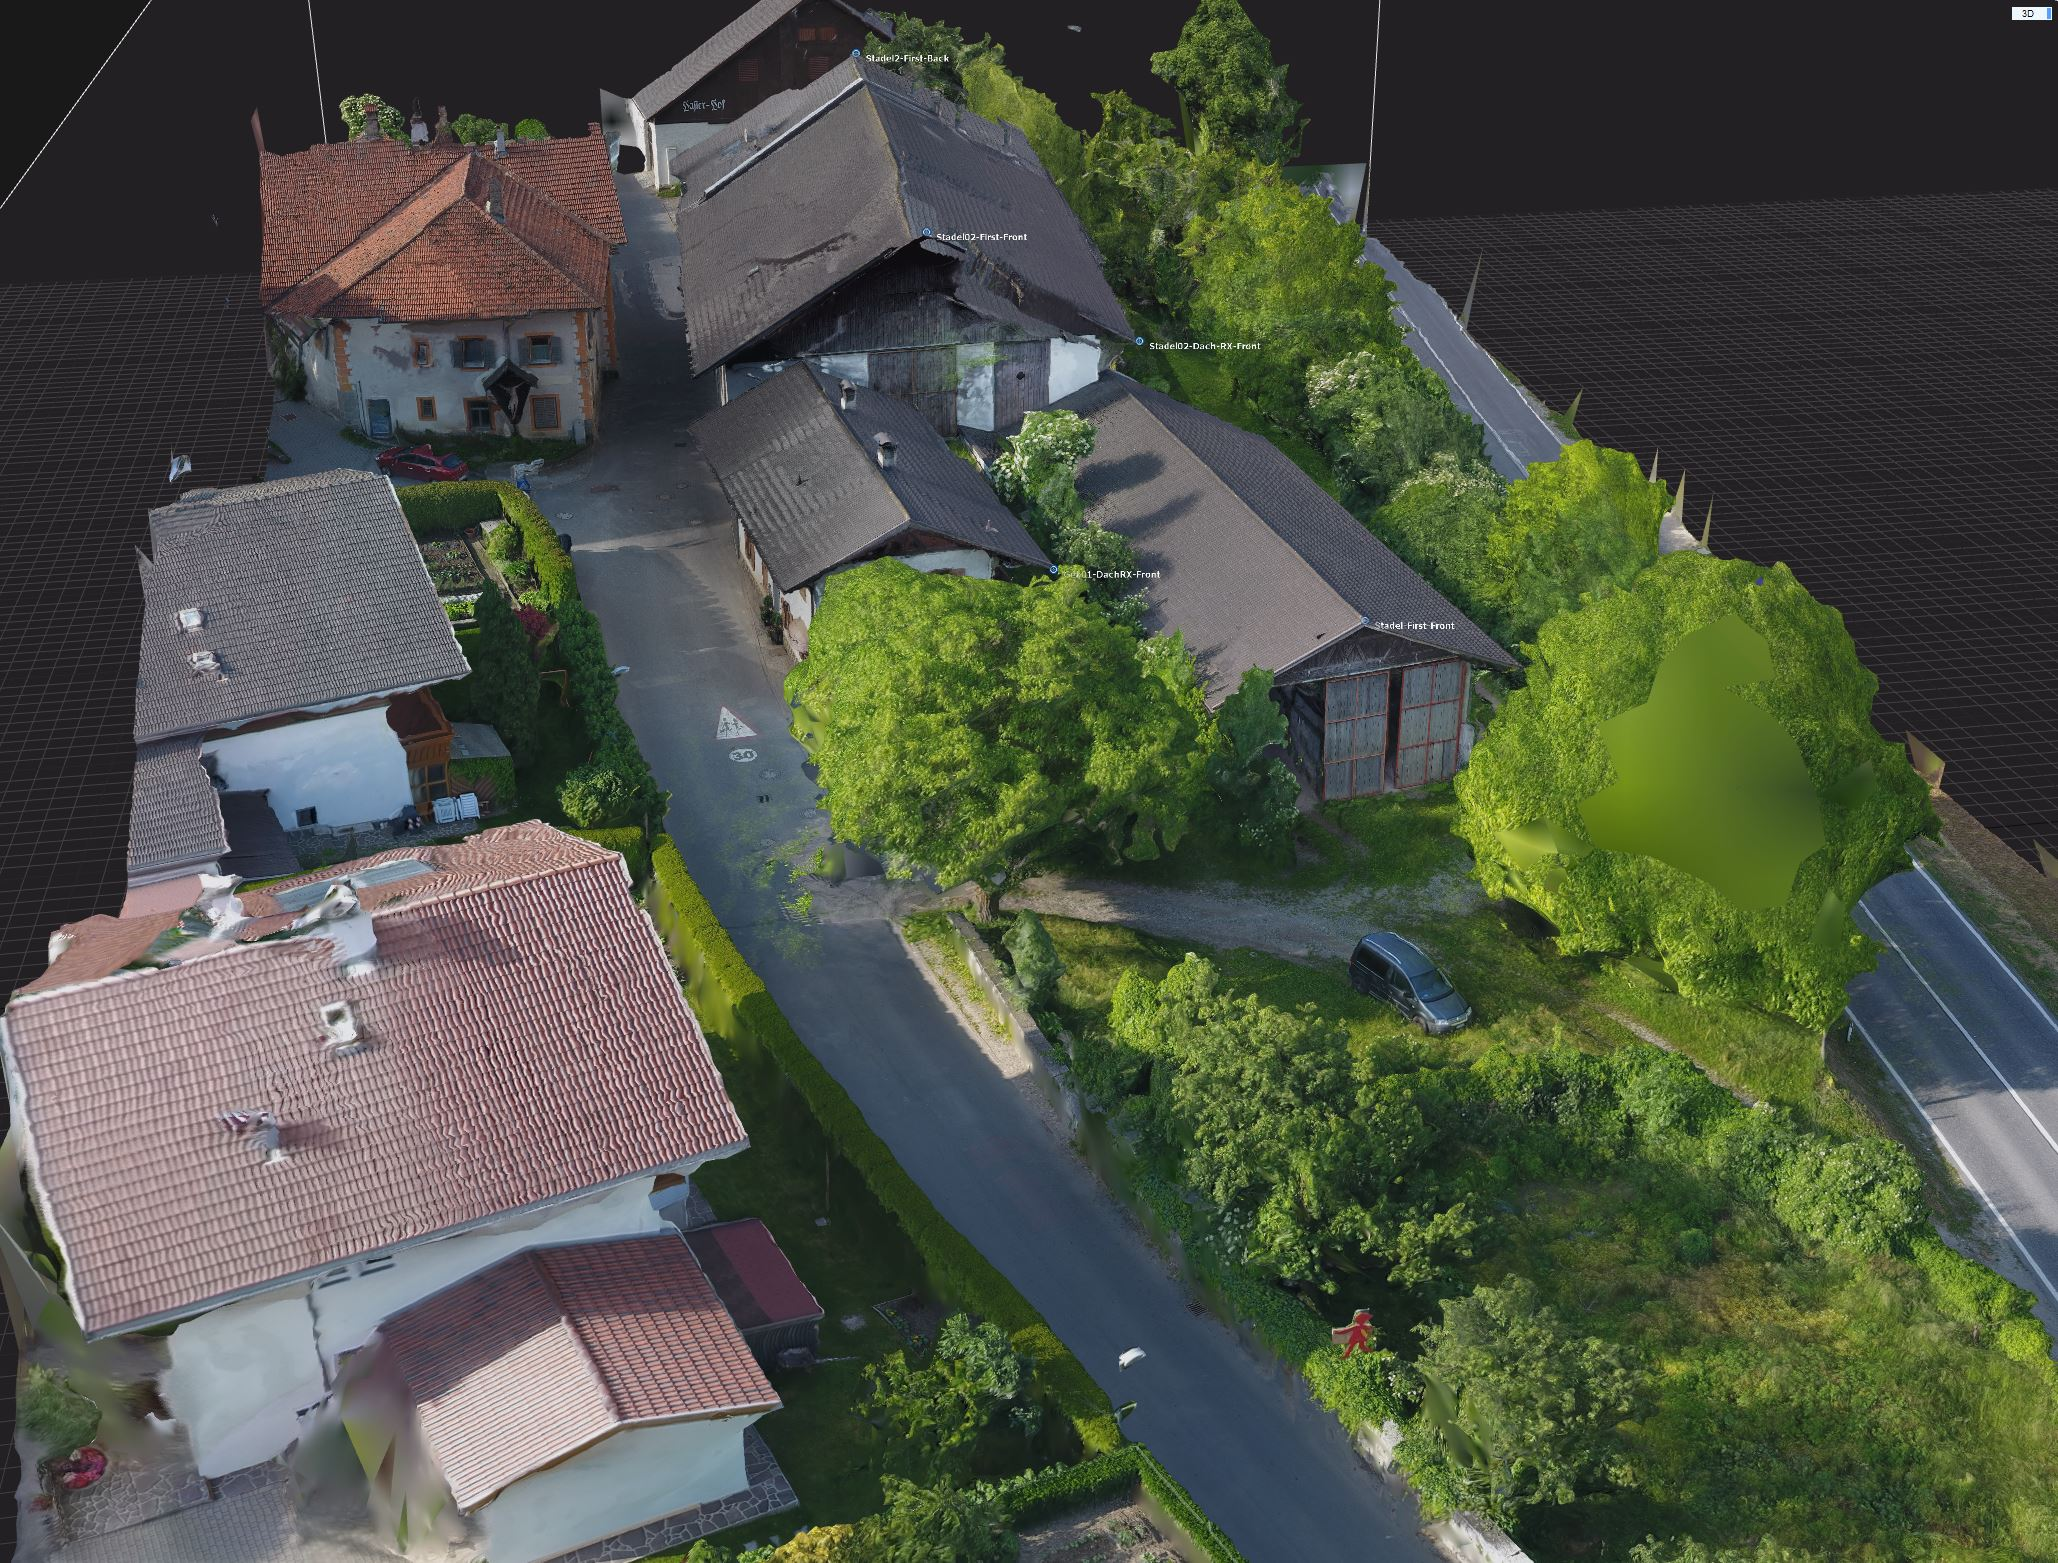 Drone Based 3D Reconstruction